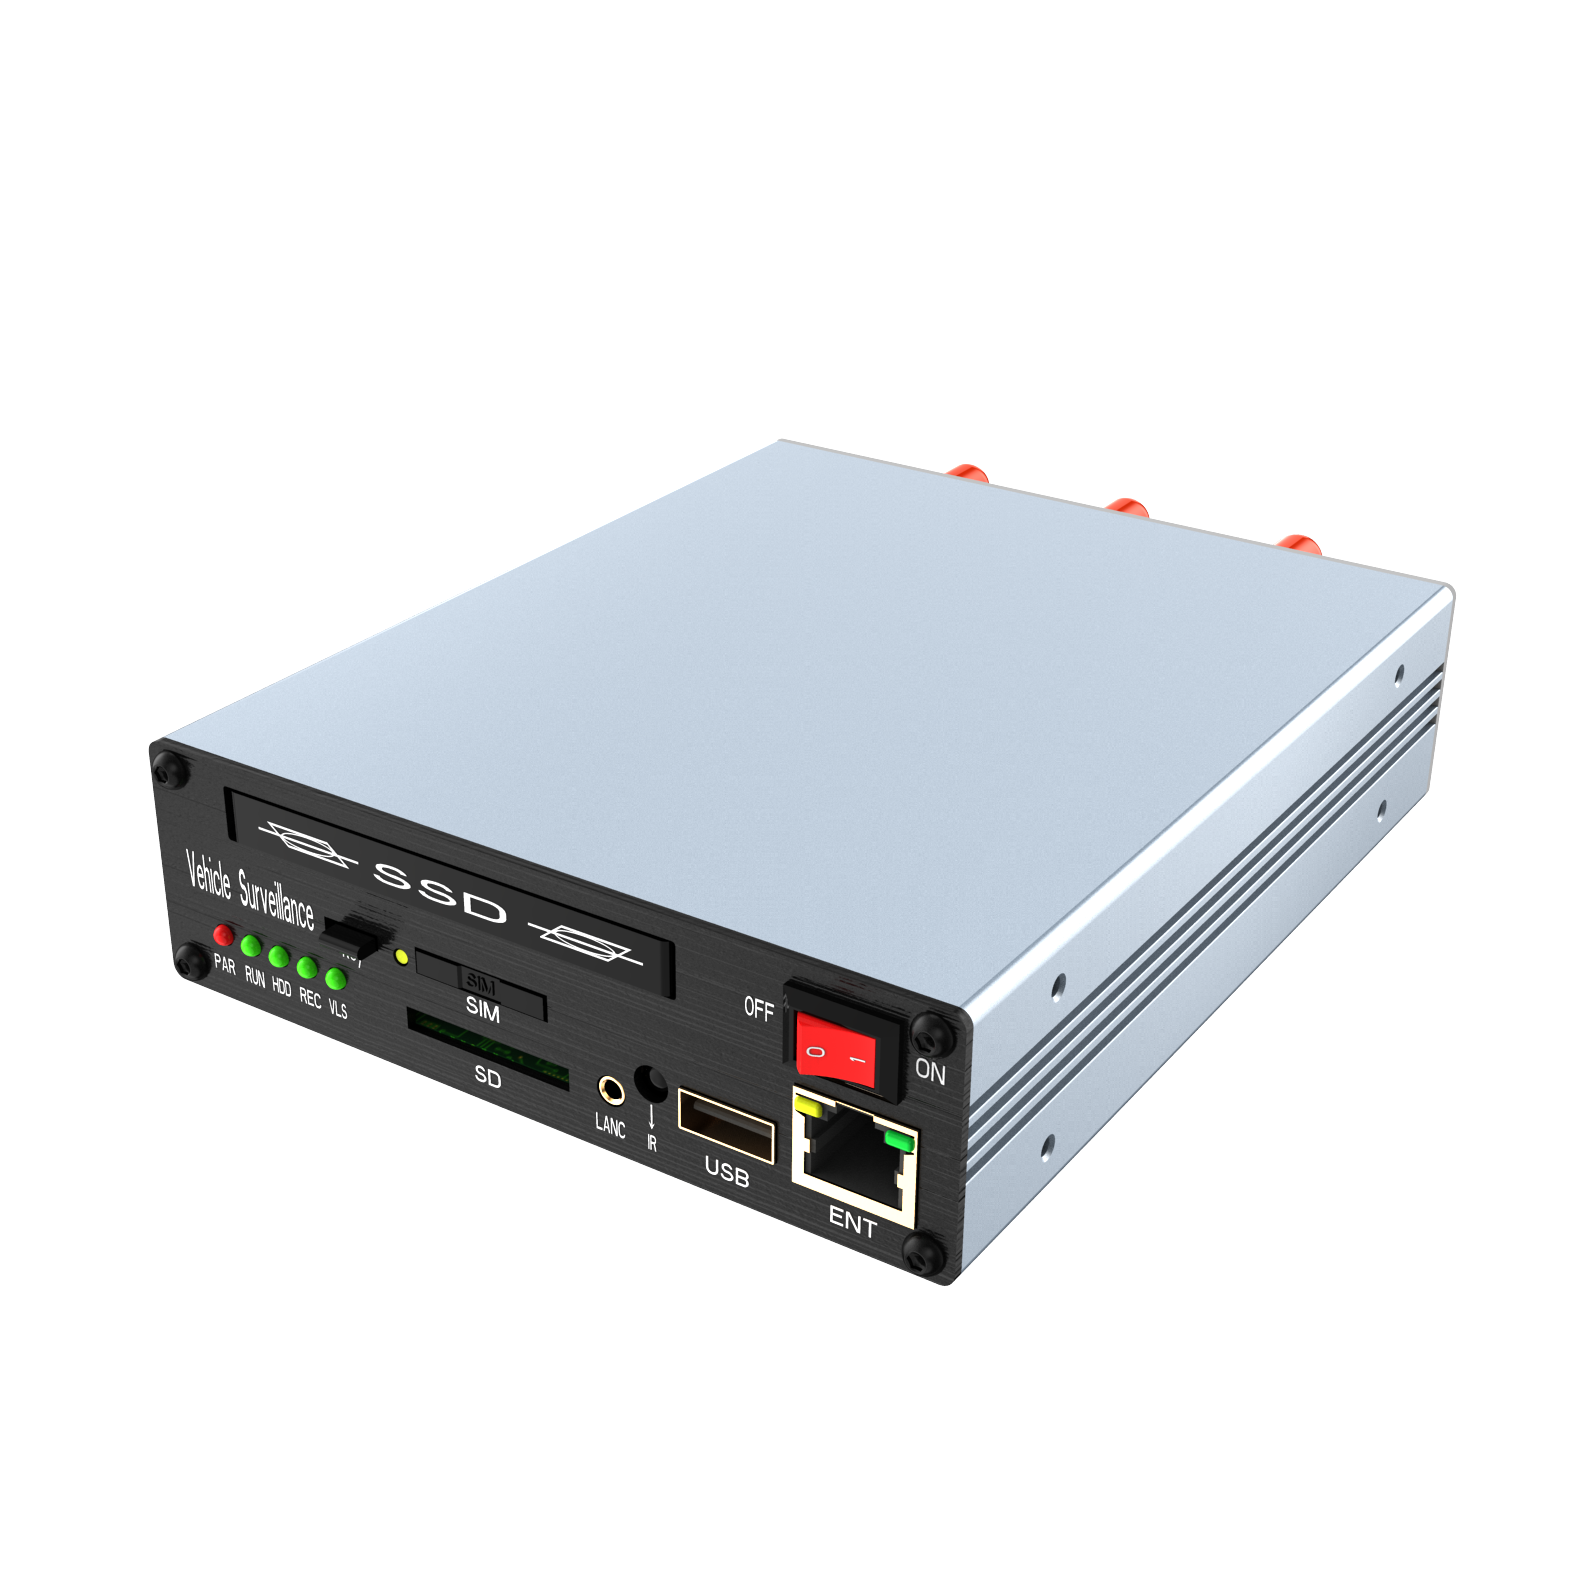 Wdr hd dashcaml hoge kwaliteit wifi 8-ch <span class=keywords><strong>dvr</strong></span> ssd <span class=keywords><strong>dvr</strong></span>